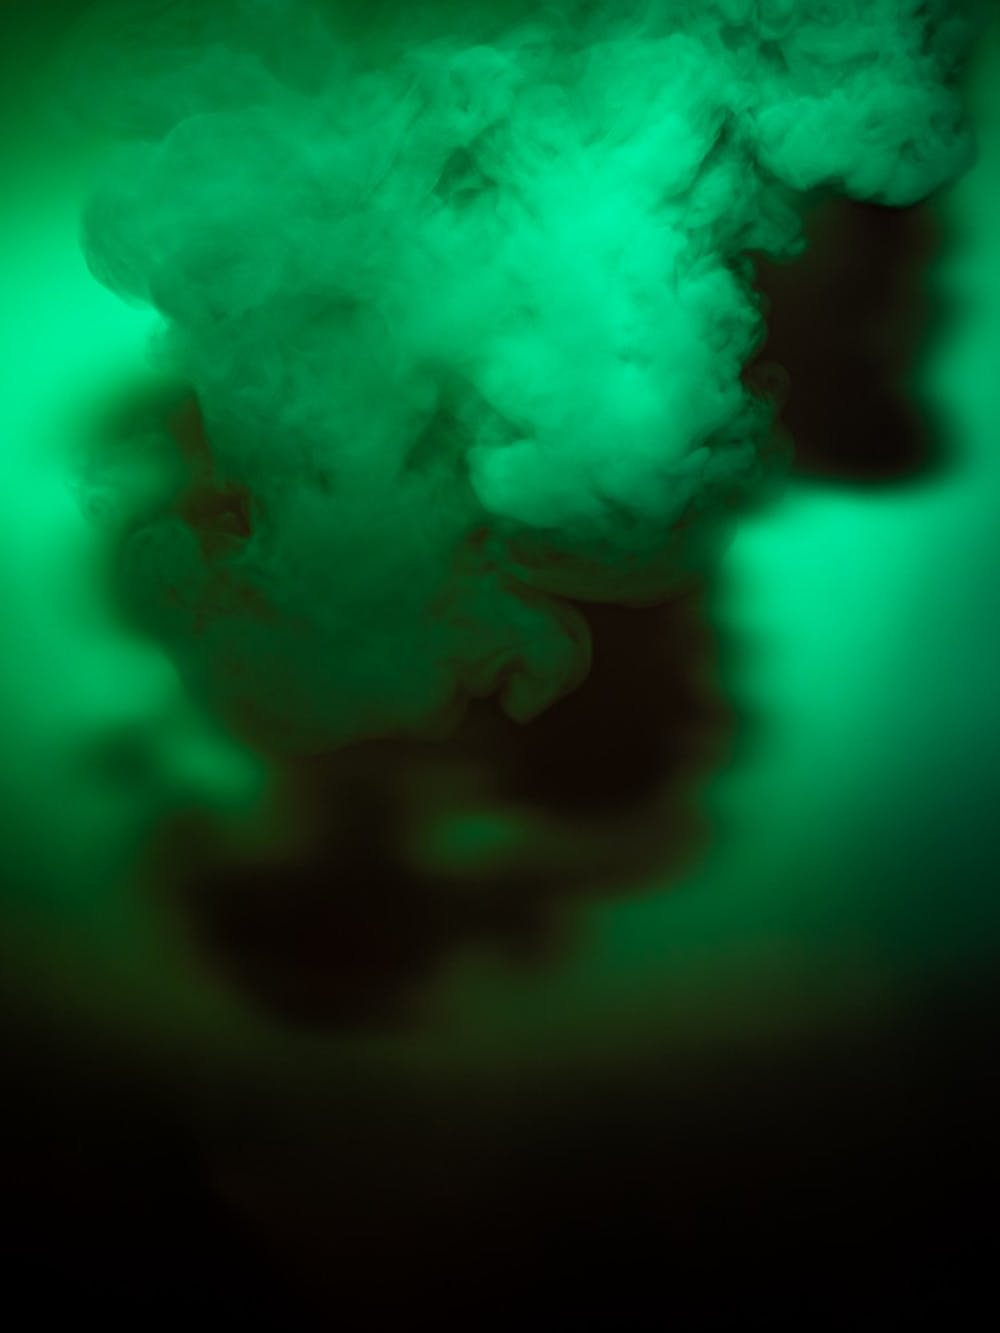 <p>A cloud of vapor underneath green light. Photographed on Oct. 21, 2019.</p>